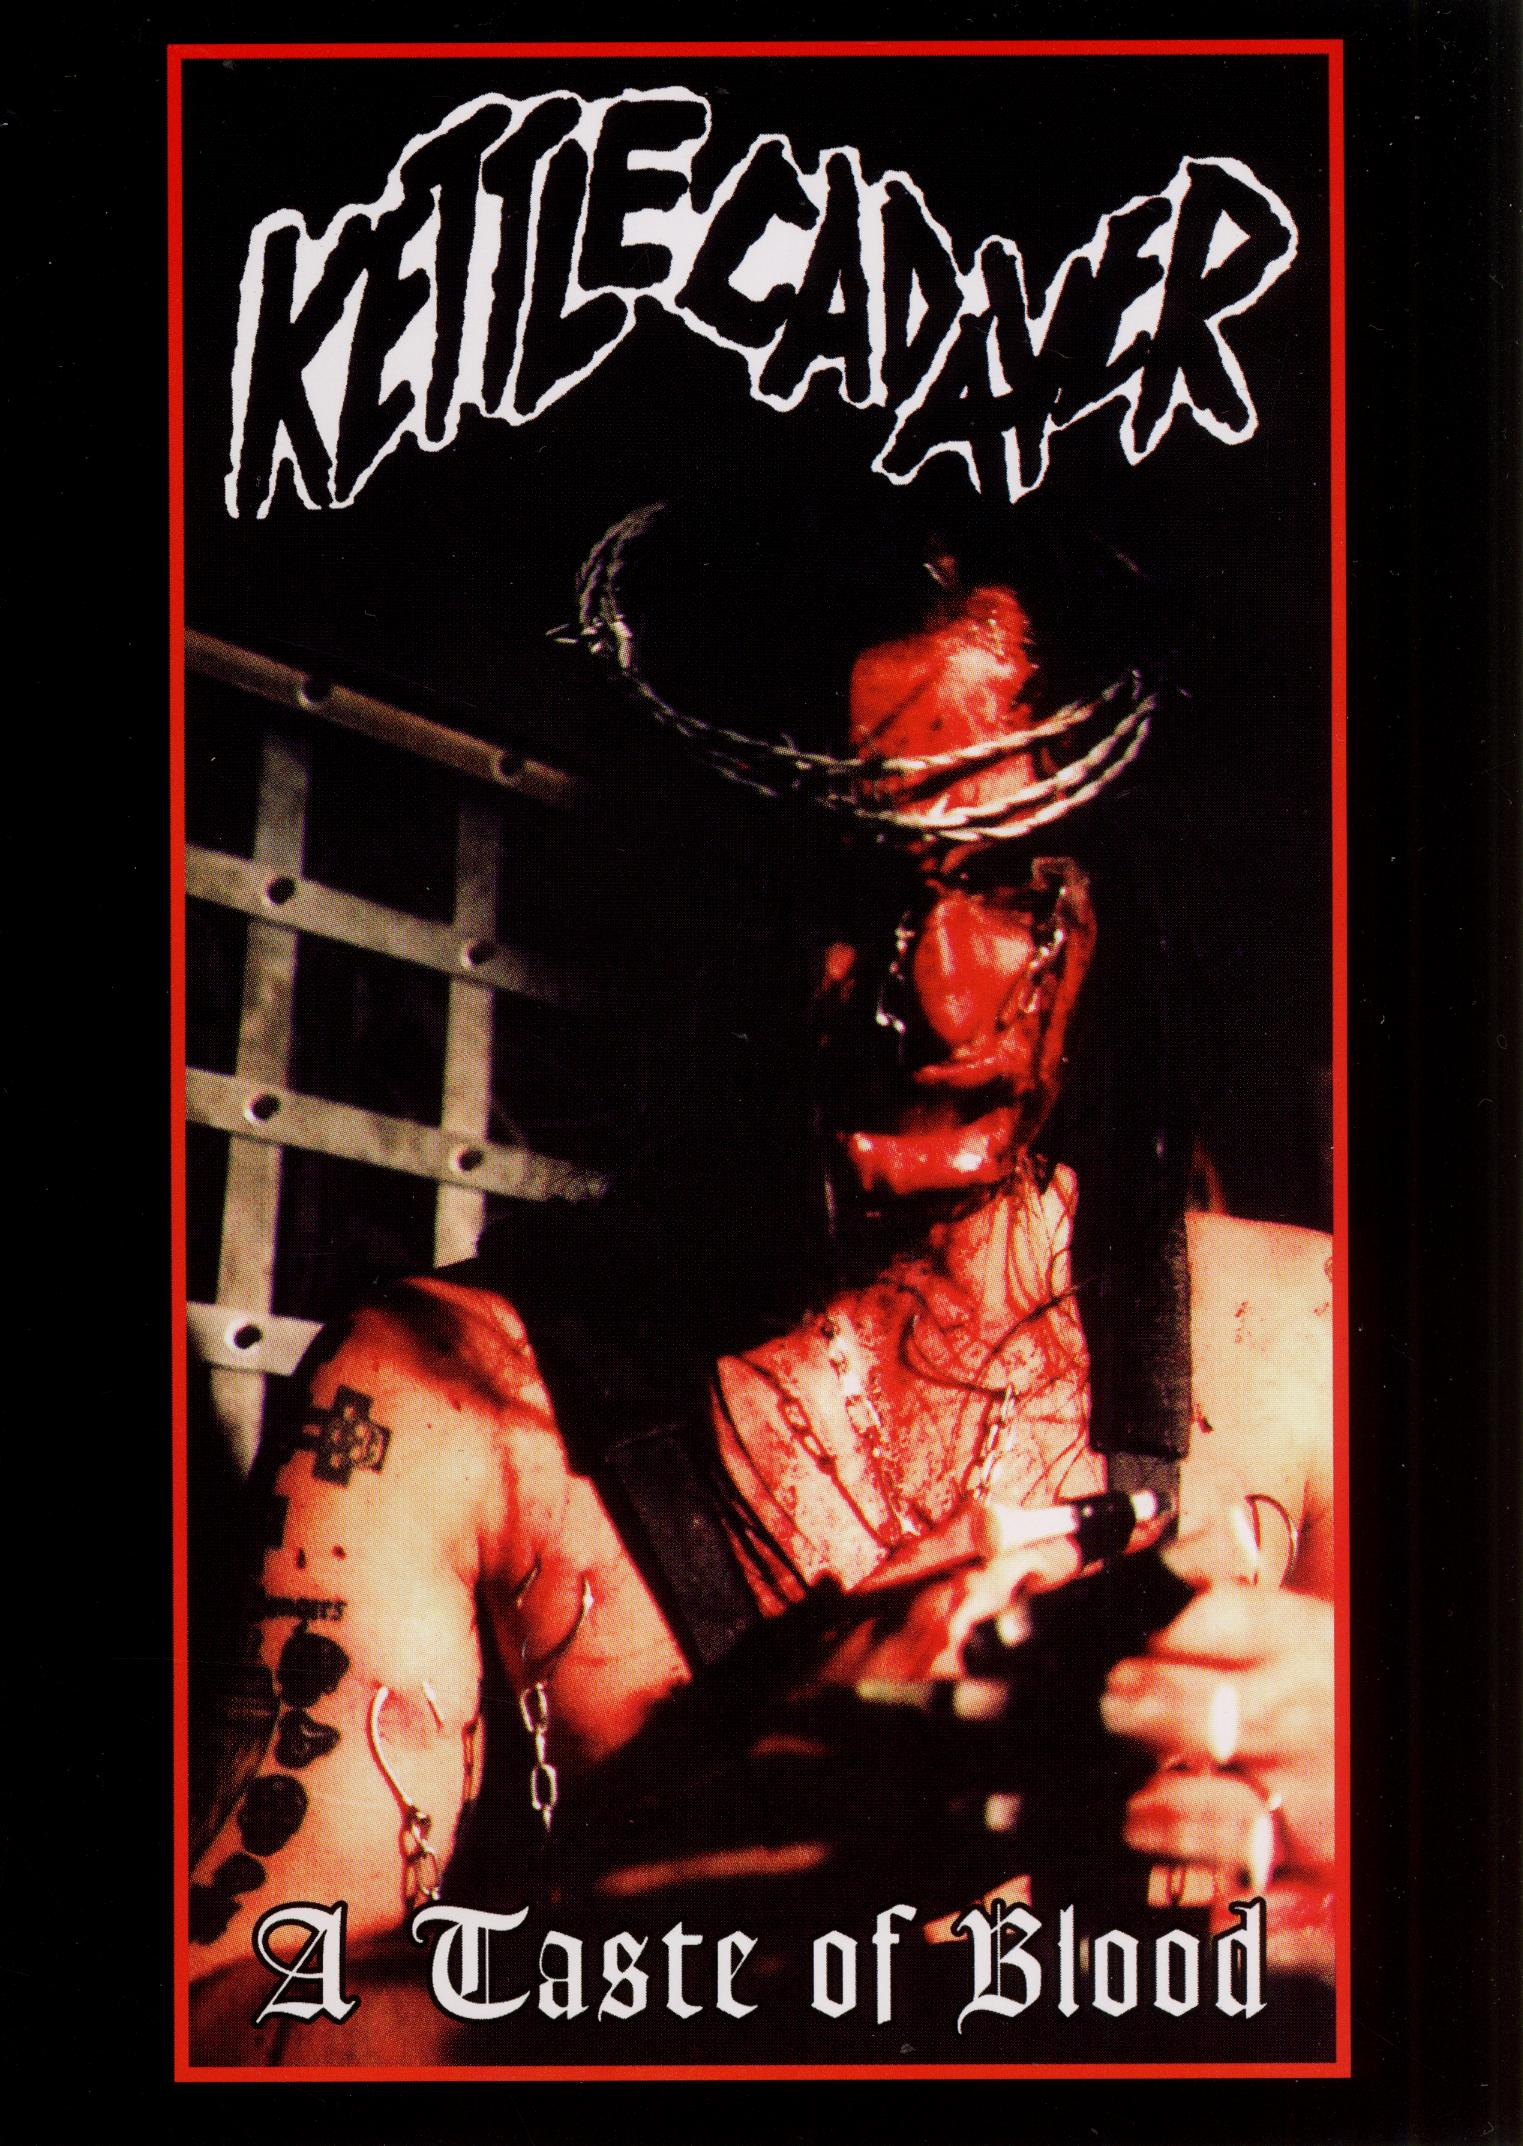 Kettle Cadaver: A Taste of Blood